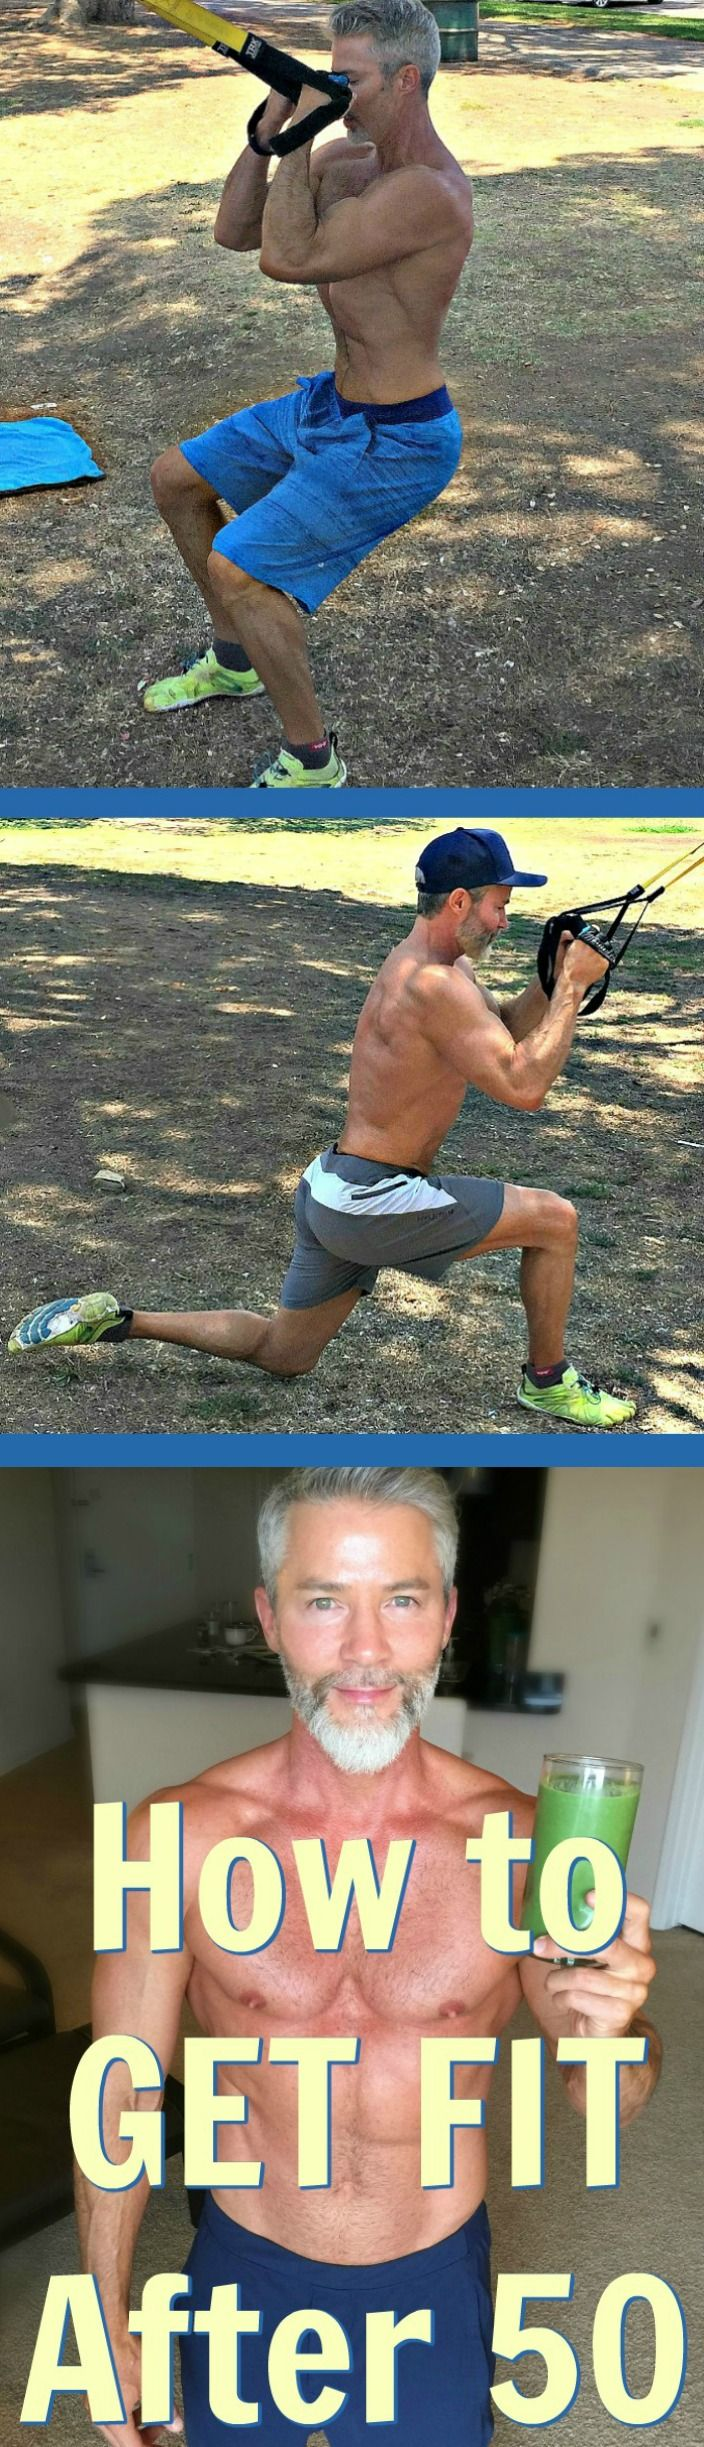 Over 50? Want to be more fit? START HERE. http://overfiftyandfit.com/start-here-motivation/ via @danenow